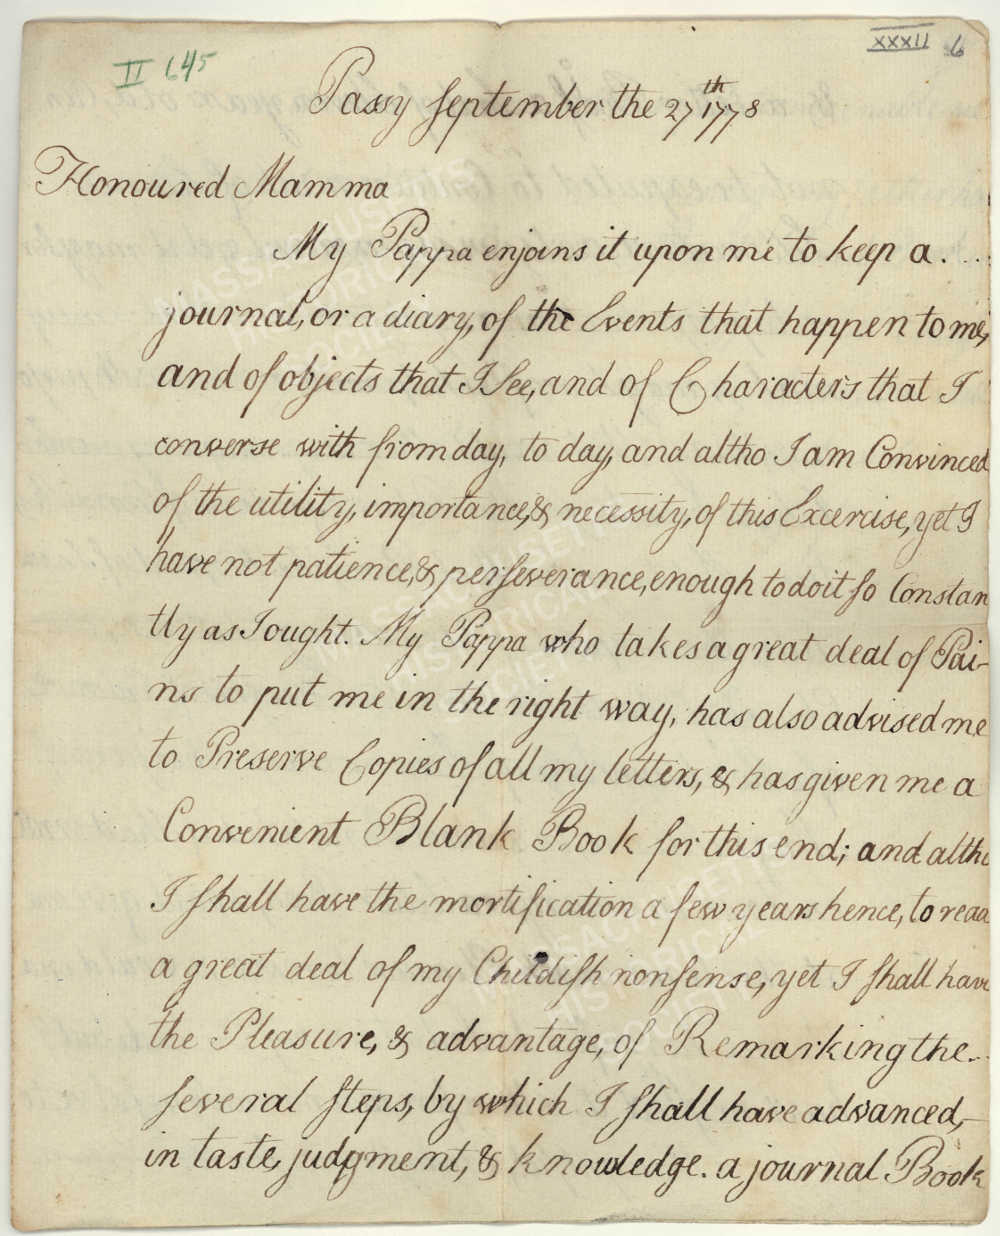 Letter from John Quincy Adams to Abigail Adams, 27 September 1778. Eleven-year-old John Quincy Adams wrote this letter to his mother from Passy, France, where he accompanied his father on a diplomatic mission. The young Adams described his resolution to keep a diary and to retain copies of letters, practices he would maintain the rest of his life. Image courtesy of the Massachusetts Historical Society.